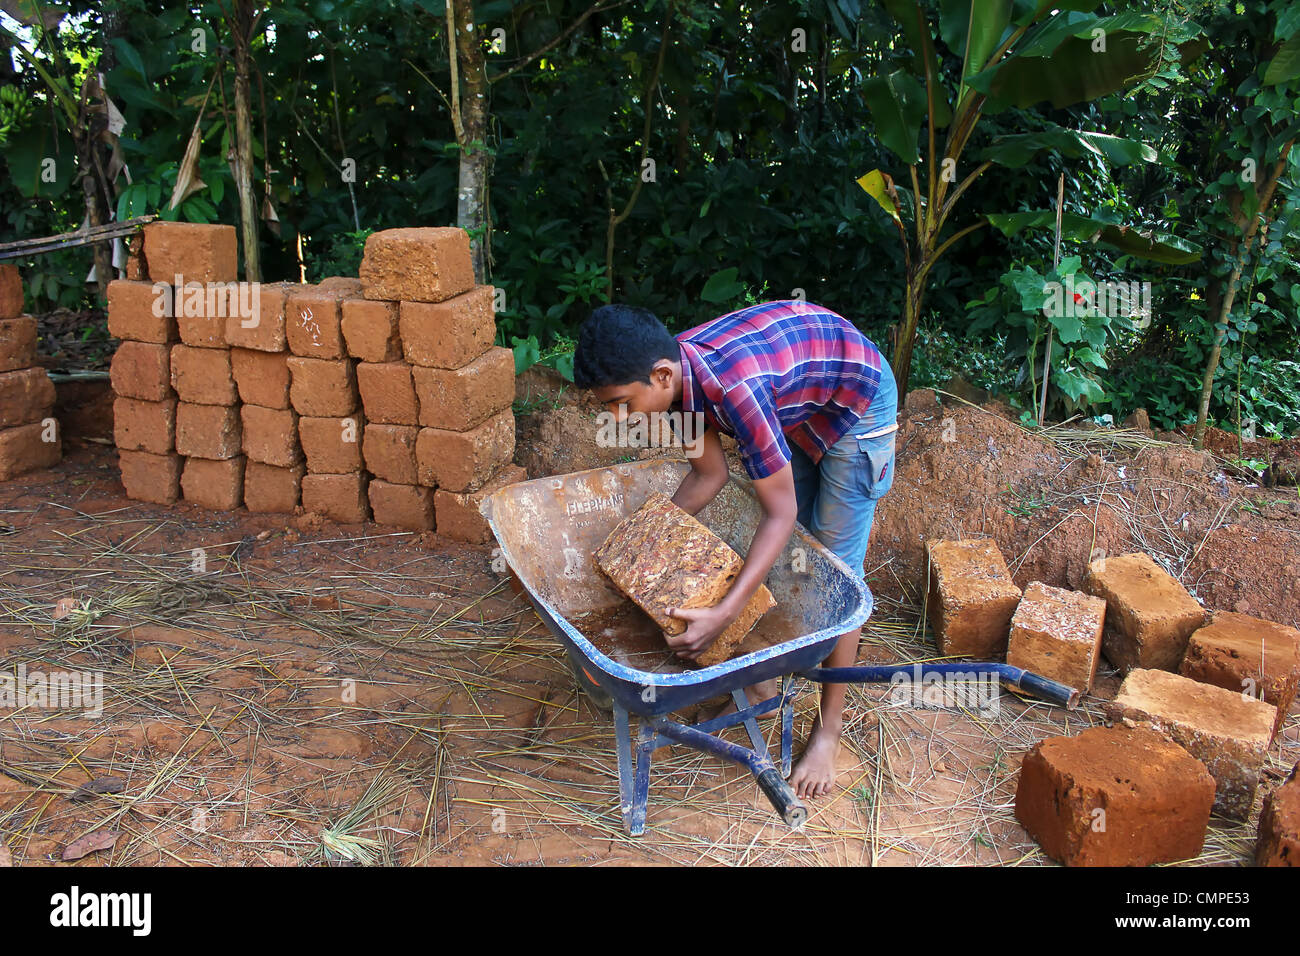 young boy turning bricks in a brick factory india,poverty child labour,homeless people - Stock Image